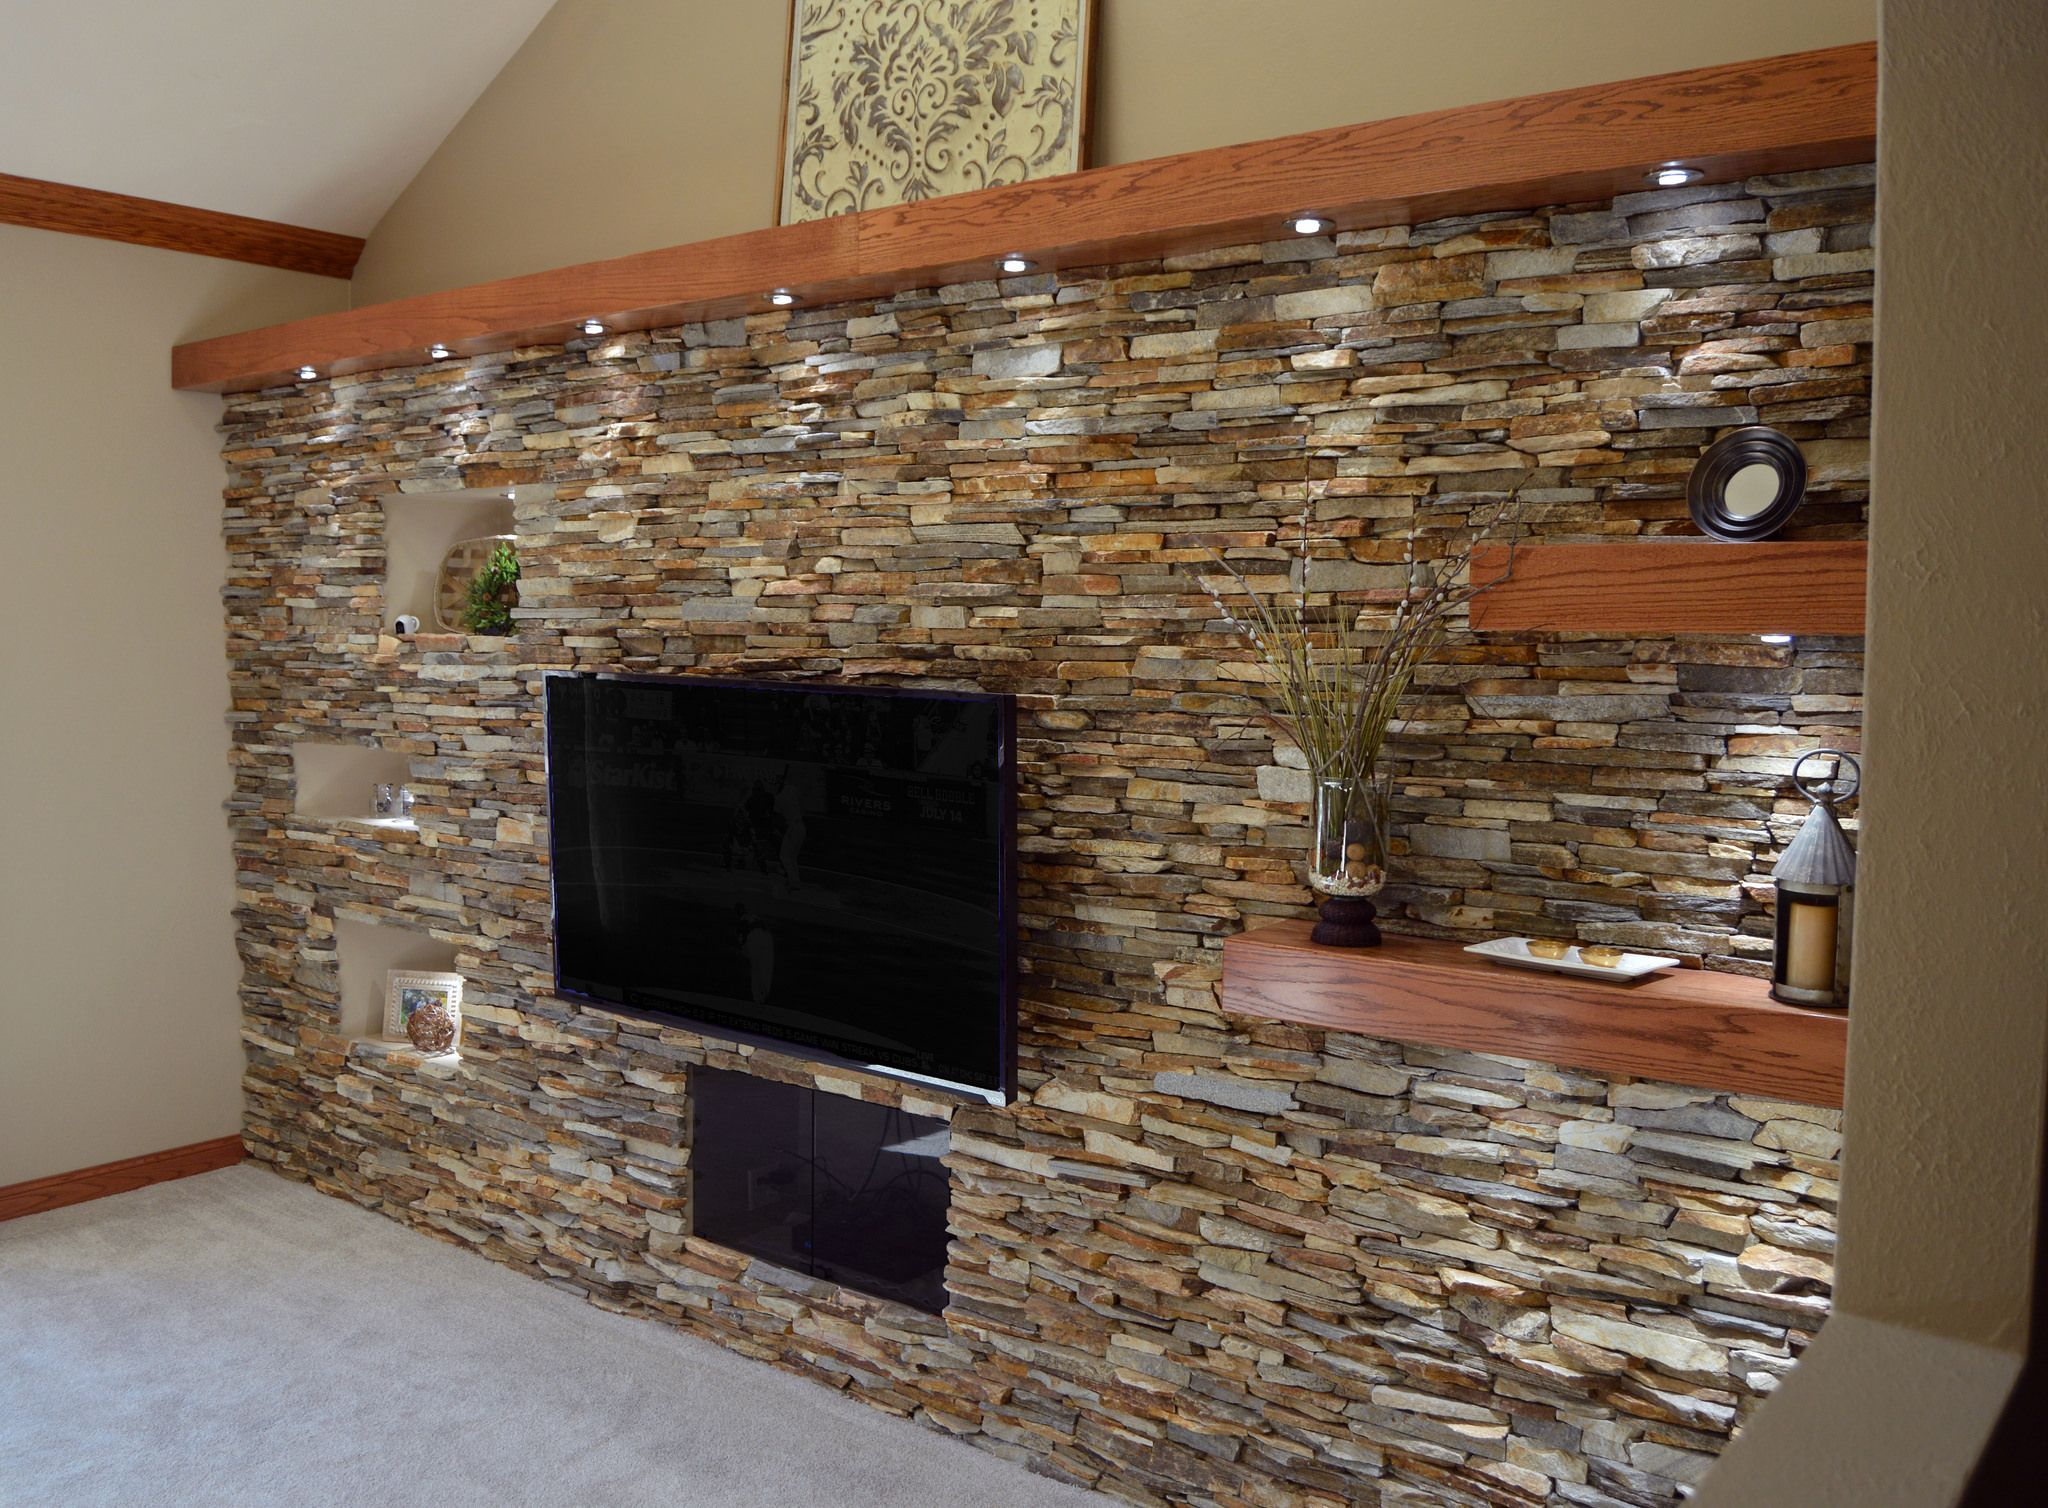 Ledgestone Fireplace Surround Interior Stone Veneer Mantel Floating Shelves Stone Accent Walls Stone Walls Interior Faux Stone Panels